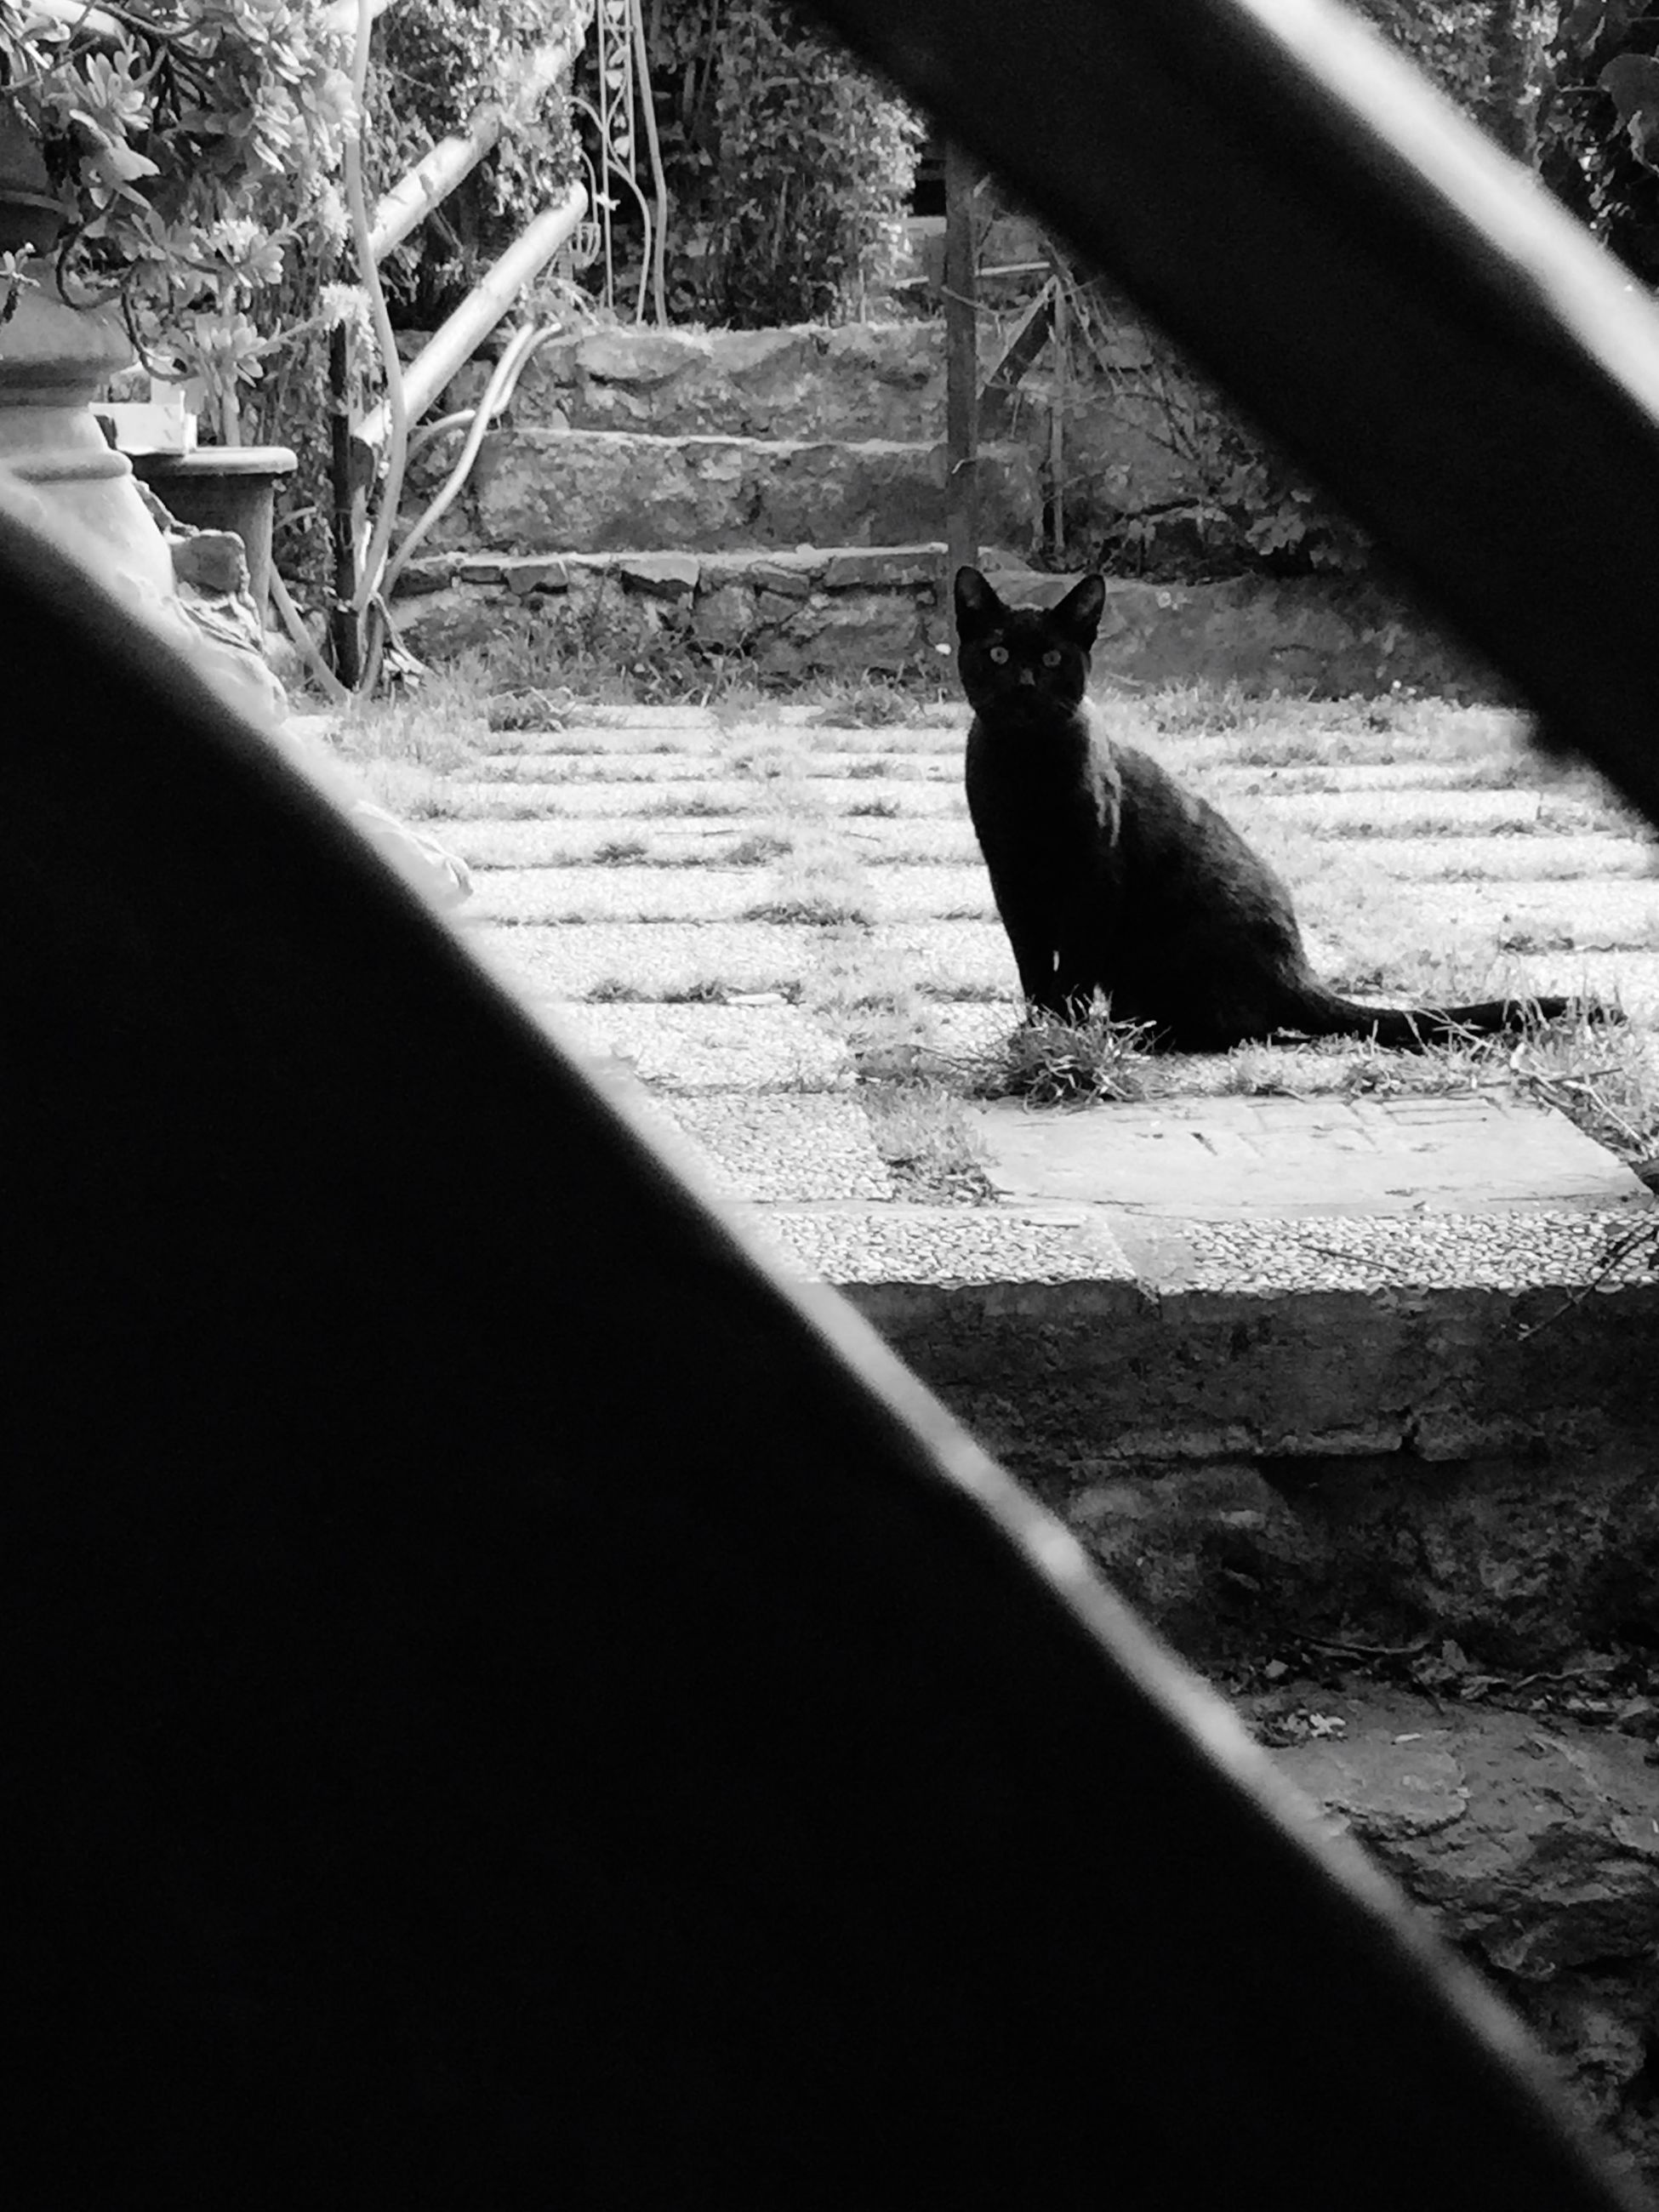 domestic animals, animal themes, mammal, one animal, pets, dog, domestic cat, sunlight, shadow, road, street, grass, cat, high angle view, outdoors, full length, day, transportation, tree, walking